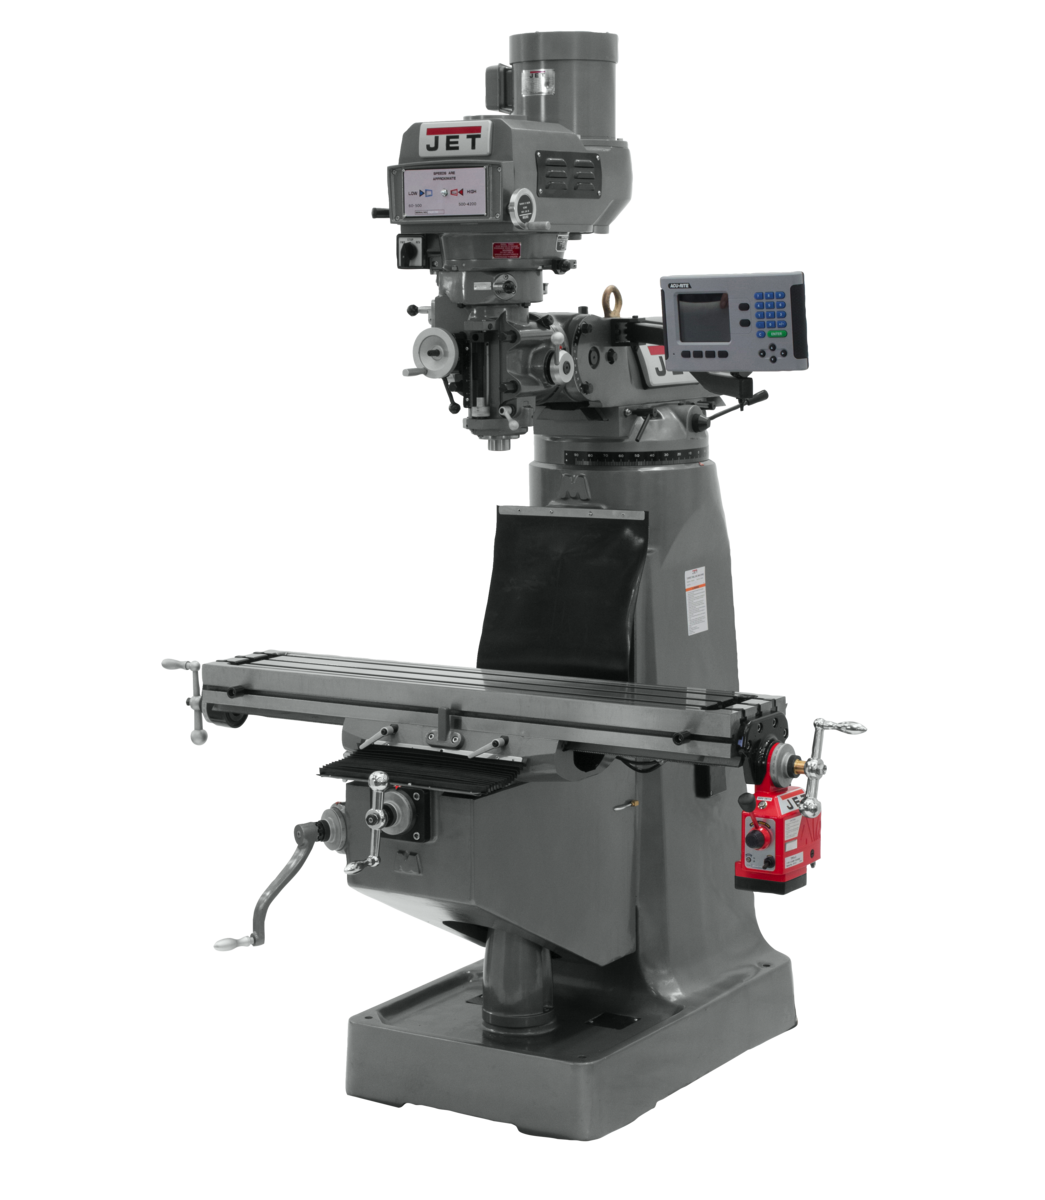 JTM-4VS-1 Mill With 3-Axis ACU-RITE 203 DRO (Knee) With X-Axis Powerfeed